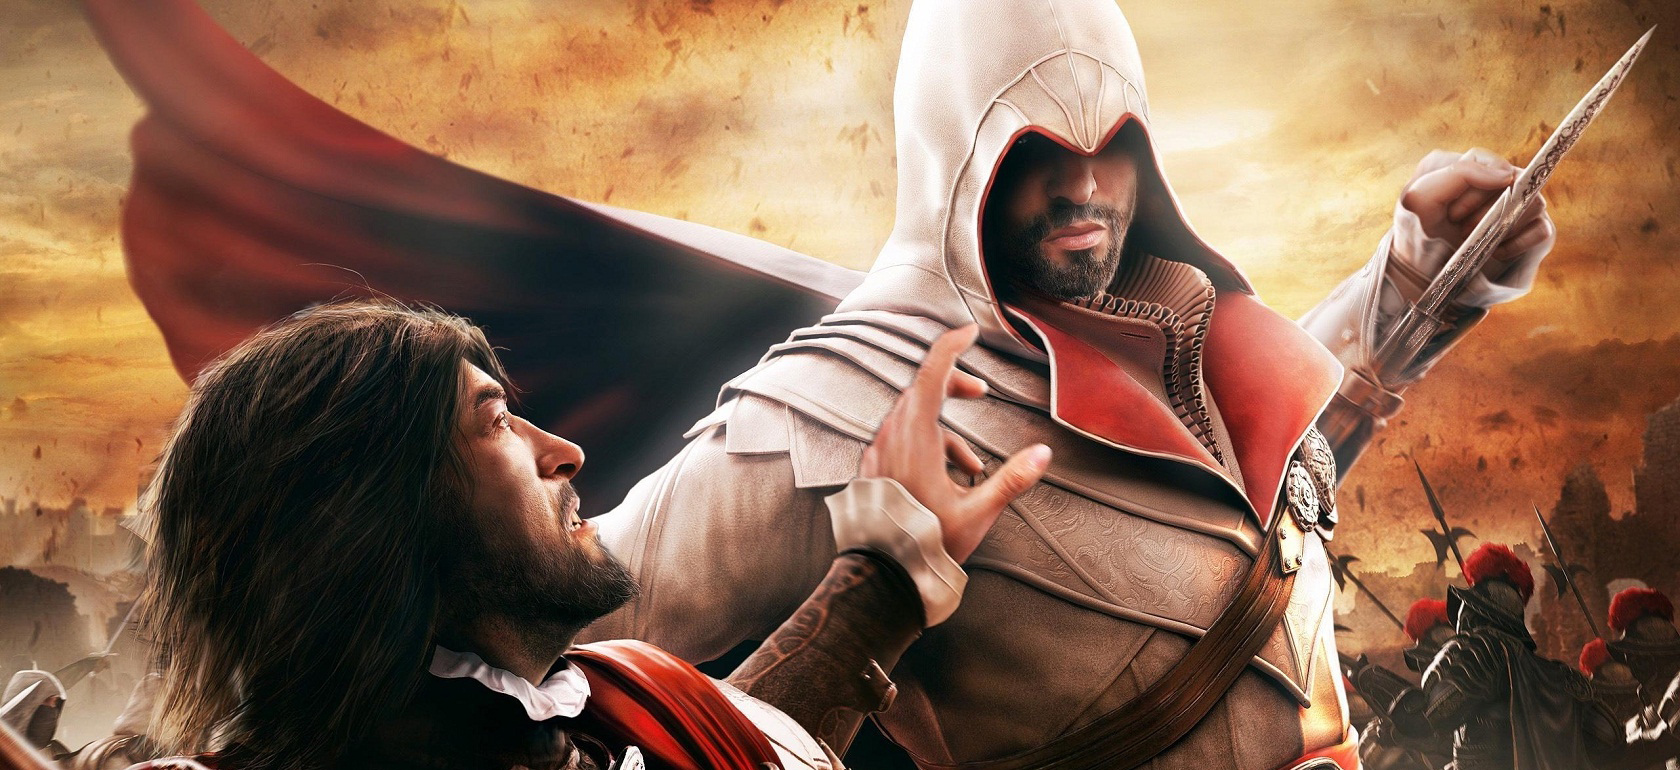 Assassin's Creed: The Essential Guide – Previews